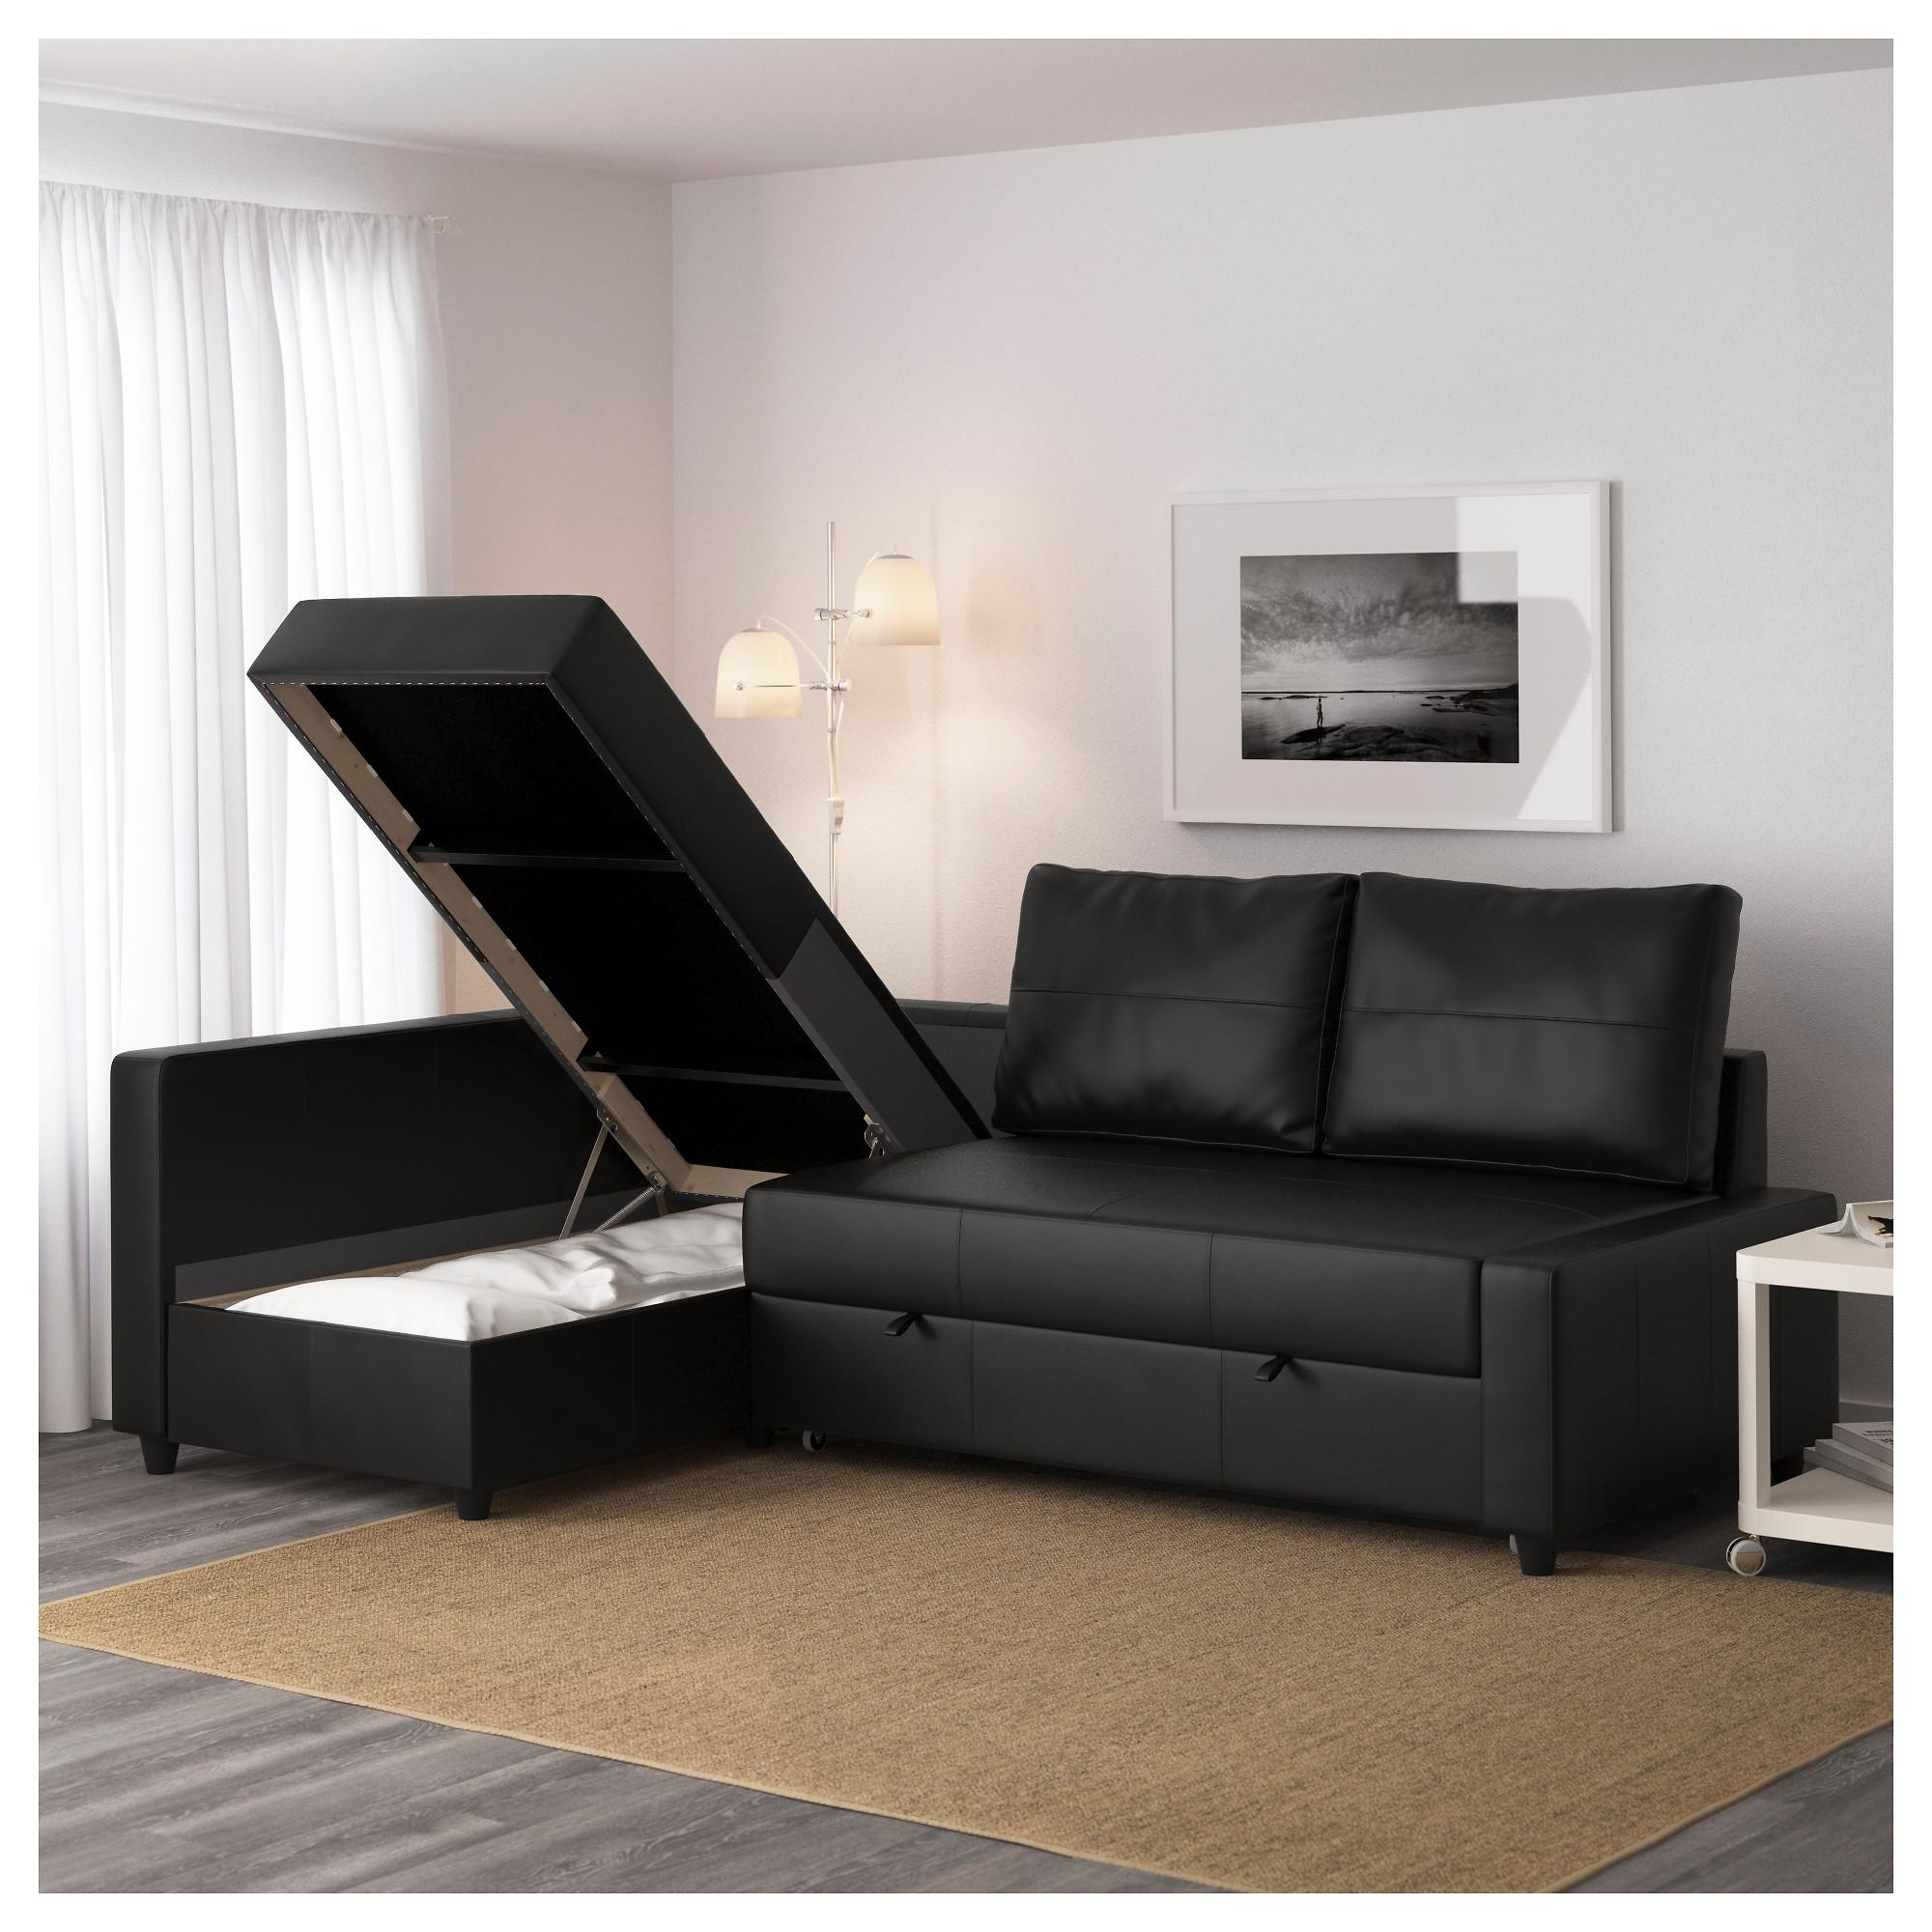 Chair Bed Target 20 Best Target Couch Beds Sofa Ideas